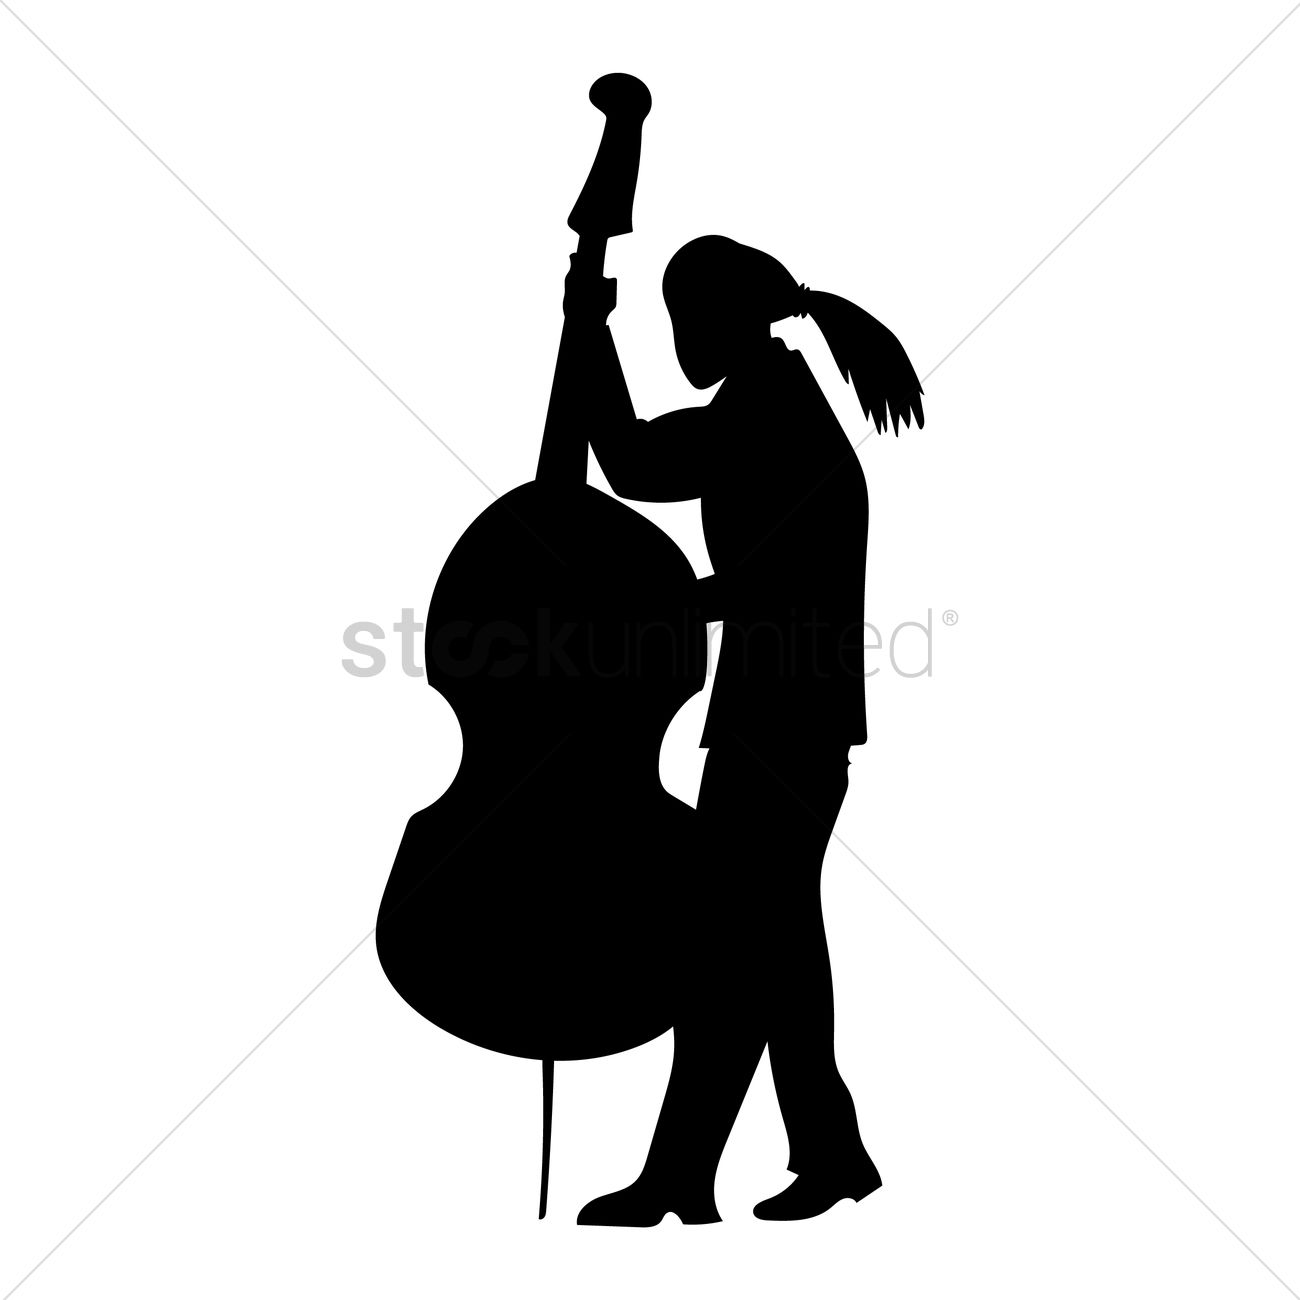 Man Playing Cello Vector Graphic